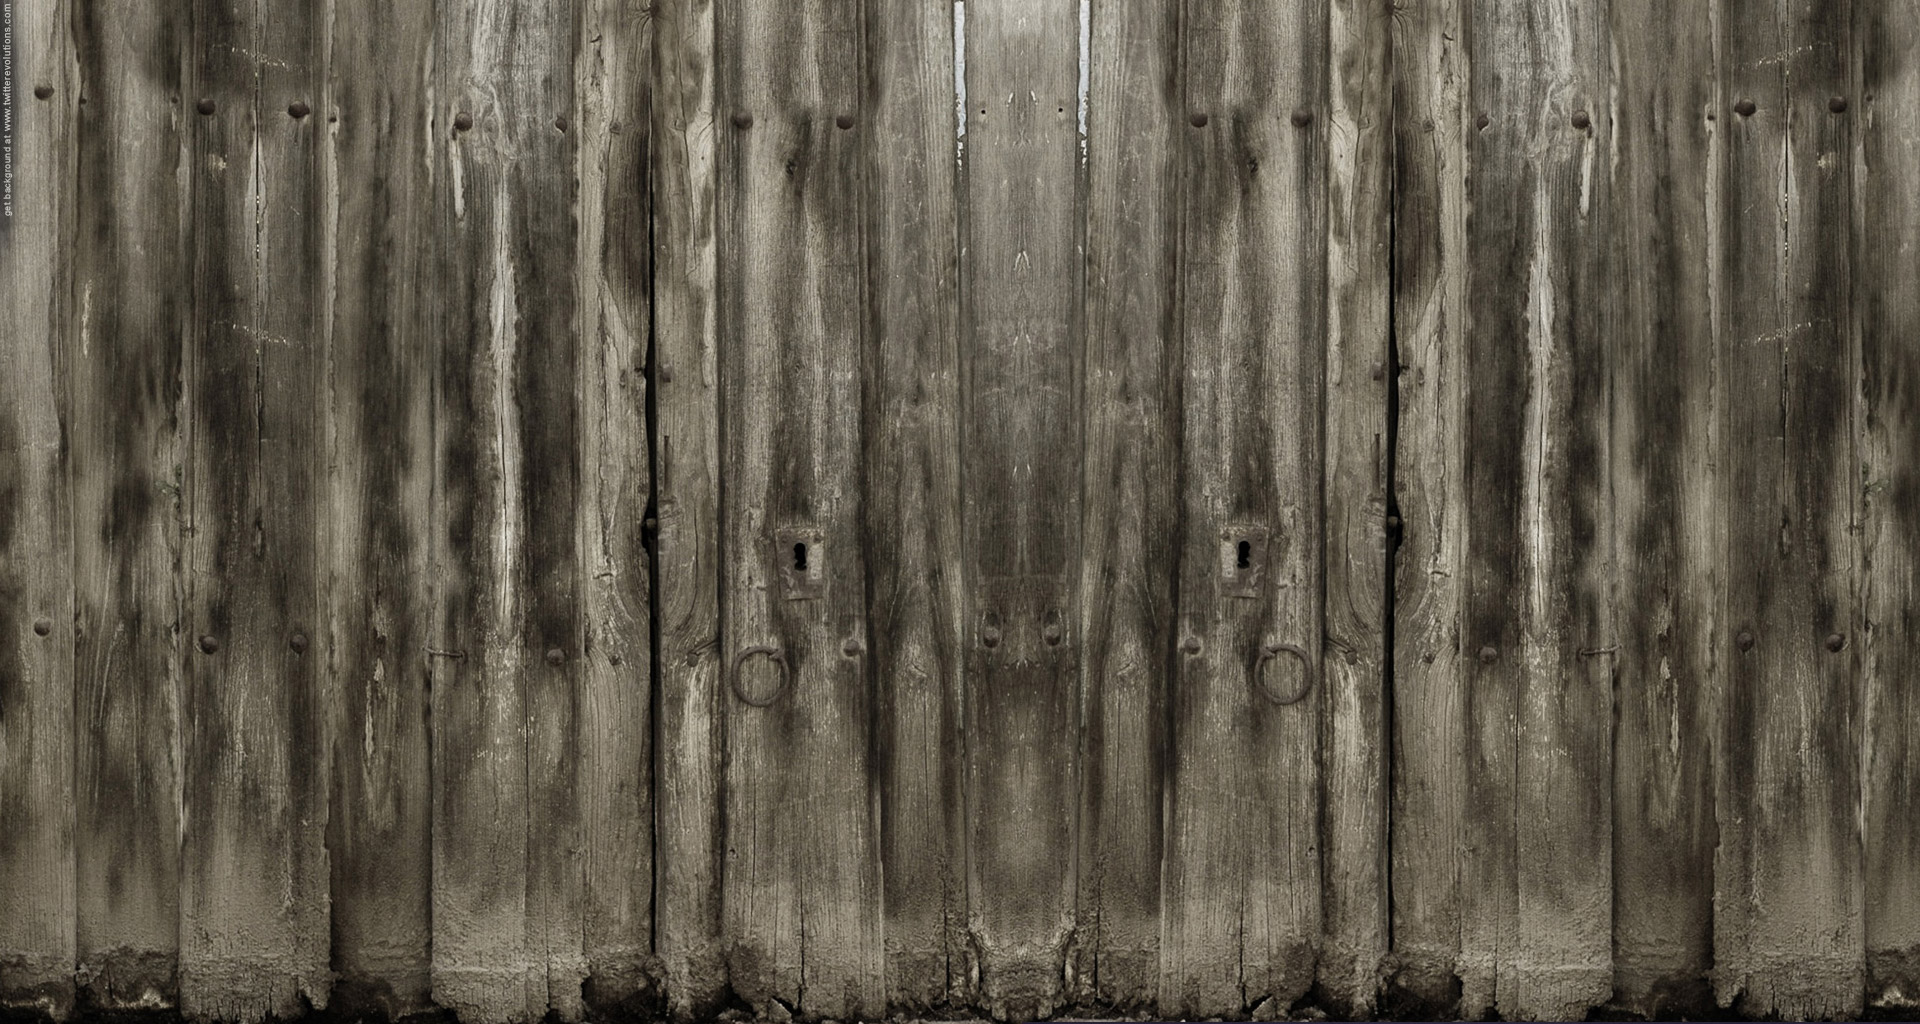 Wood background texture wooden tiles free image wood background - Wood Floor Background Tumblr Wood Backgroundstrickvilla Trickvilla Woods Backgrounds Wallpapersafari Floor Background Tumblr D In Ideas